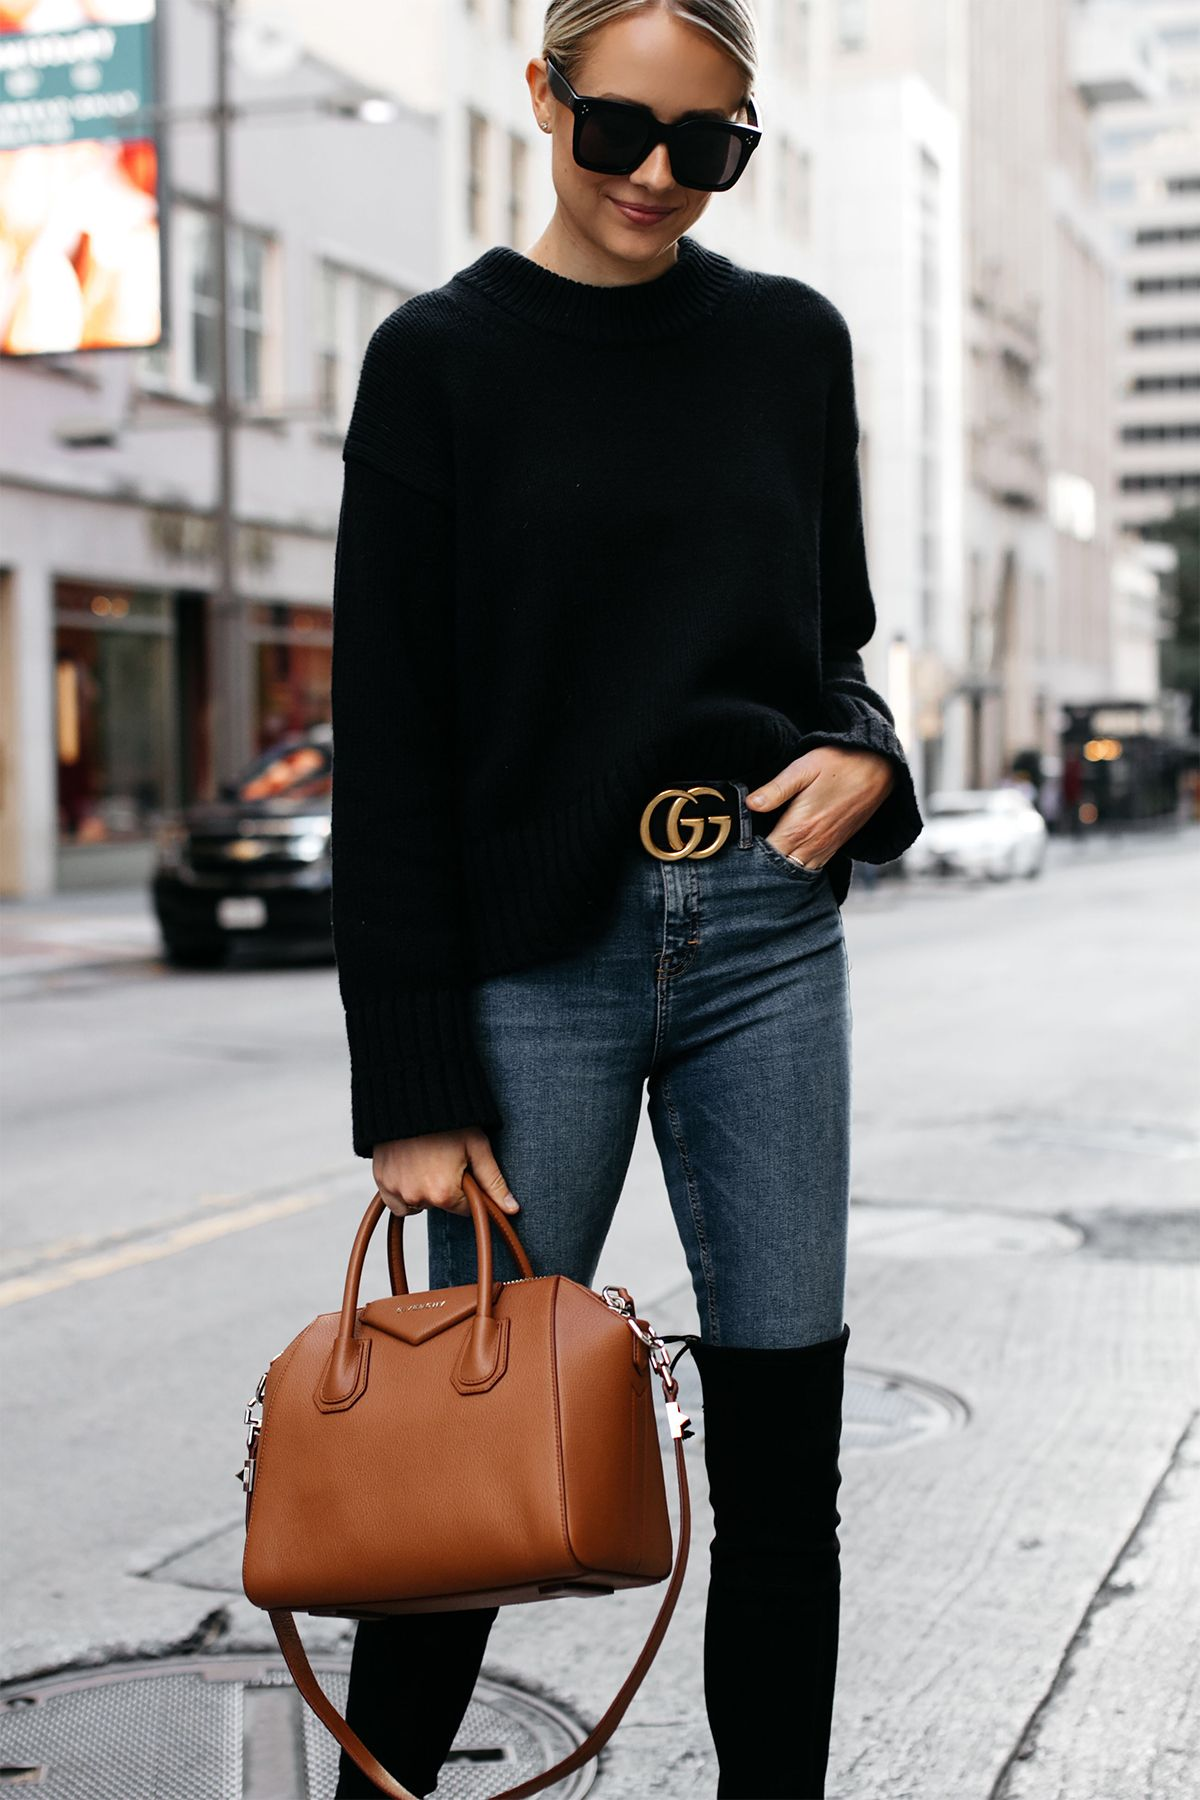 0d170b10e24 Blonde Woman Wearing Everlane Black Oversized Sweater Denim Skinny Jeans  Gucci Marmont Belt Stuart Weitzman Black Over the Knee Boots Givenchy  Antigona ...